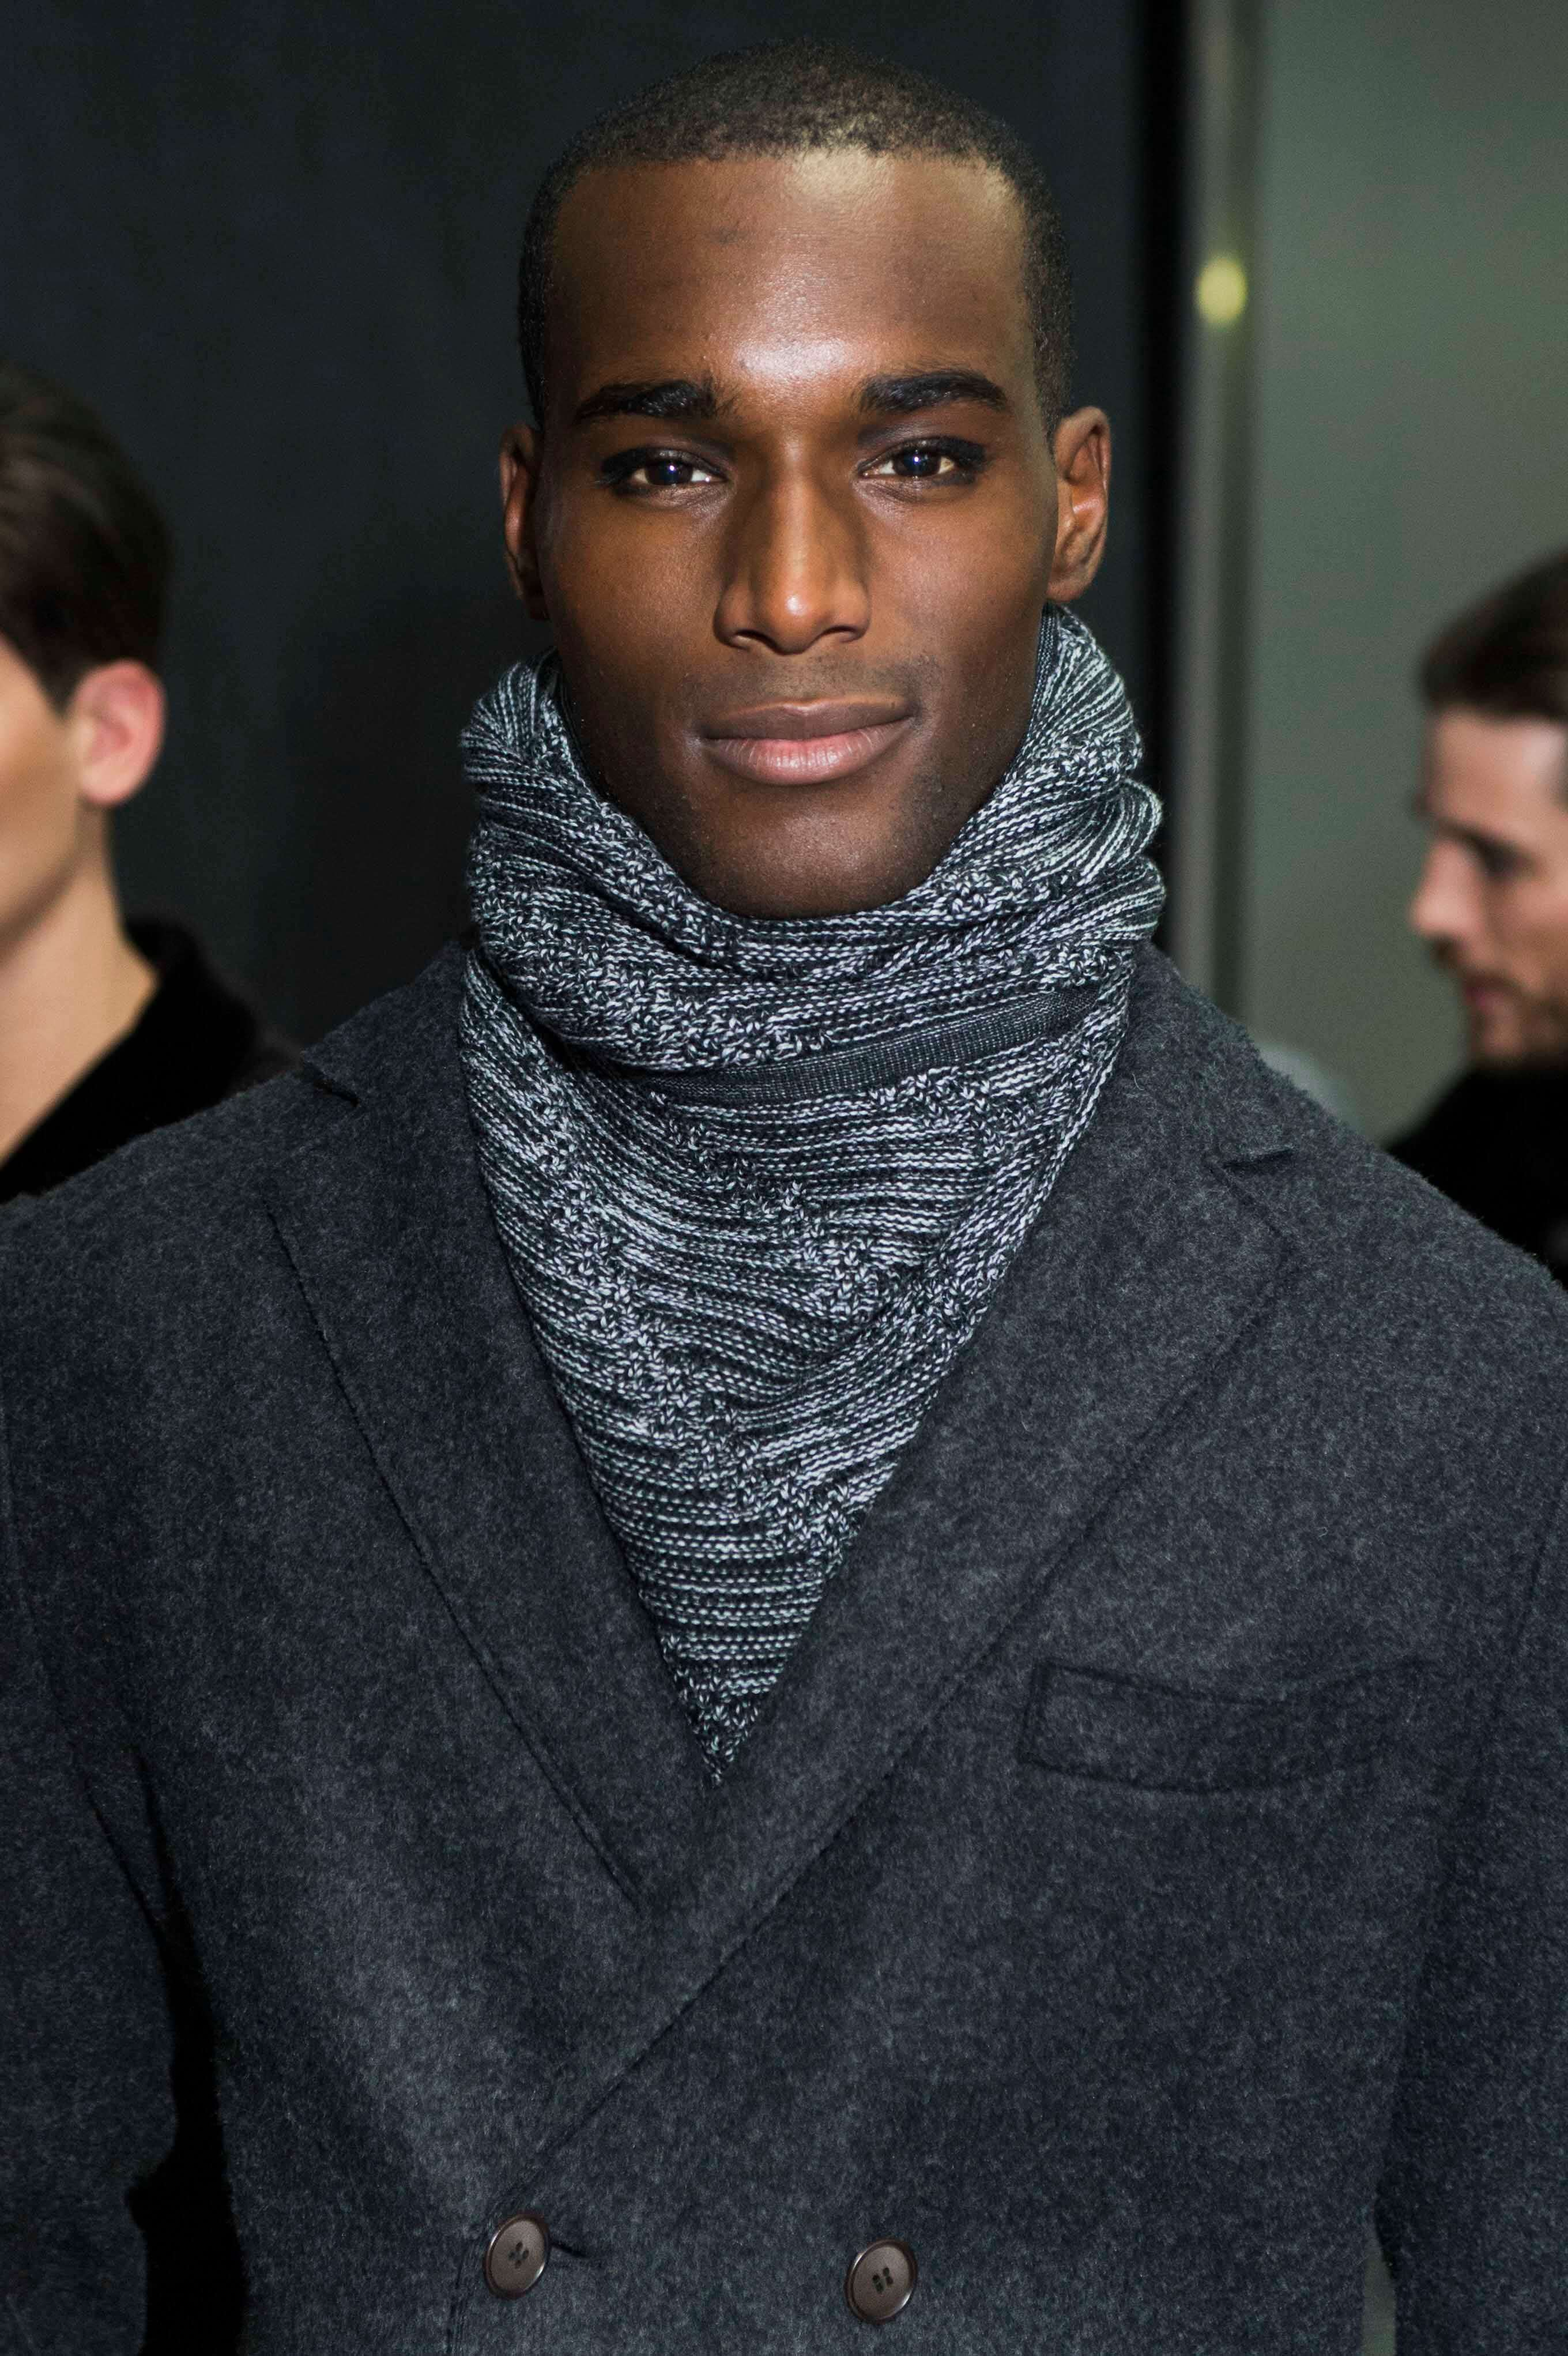 close up shot of a black male model with a buzz cut hairstyle, wearing jacket and scarf, backstage